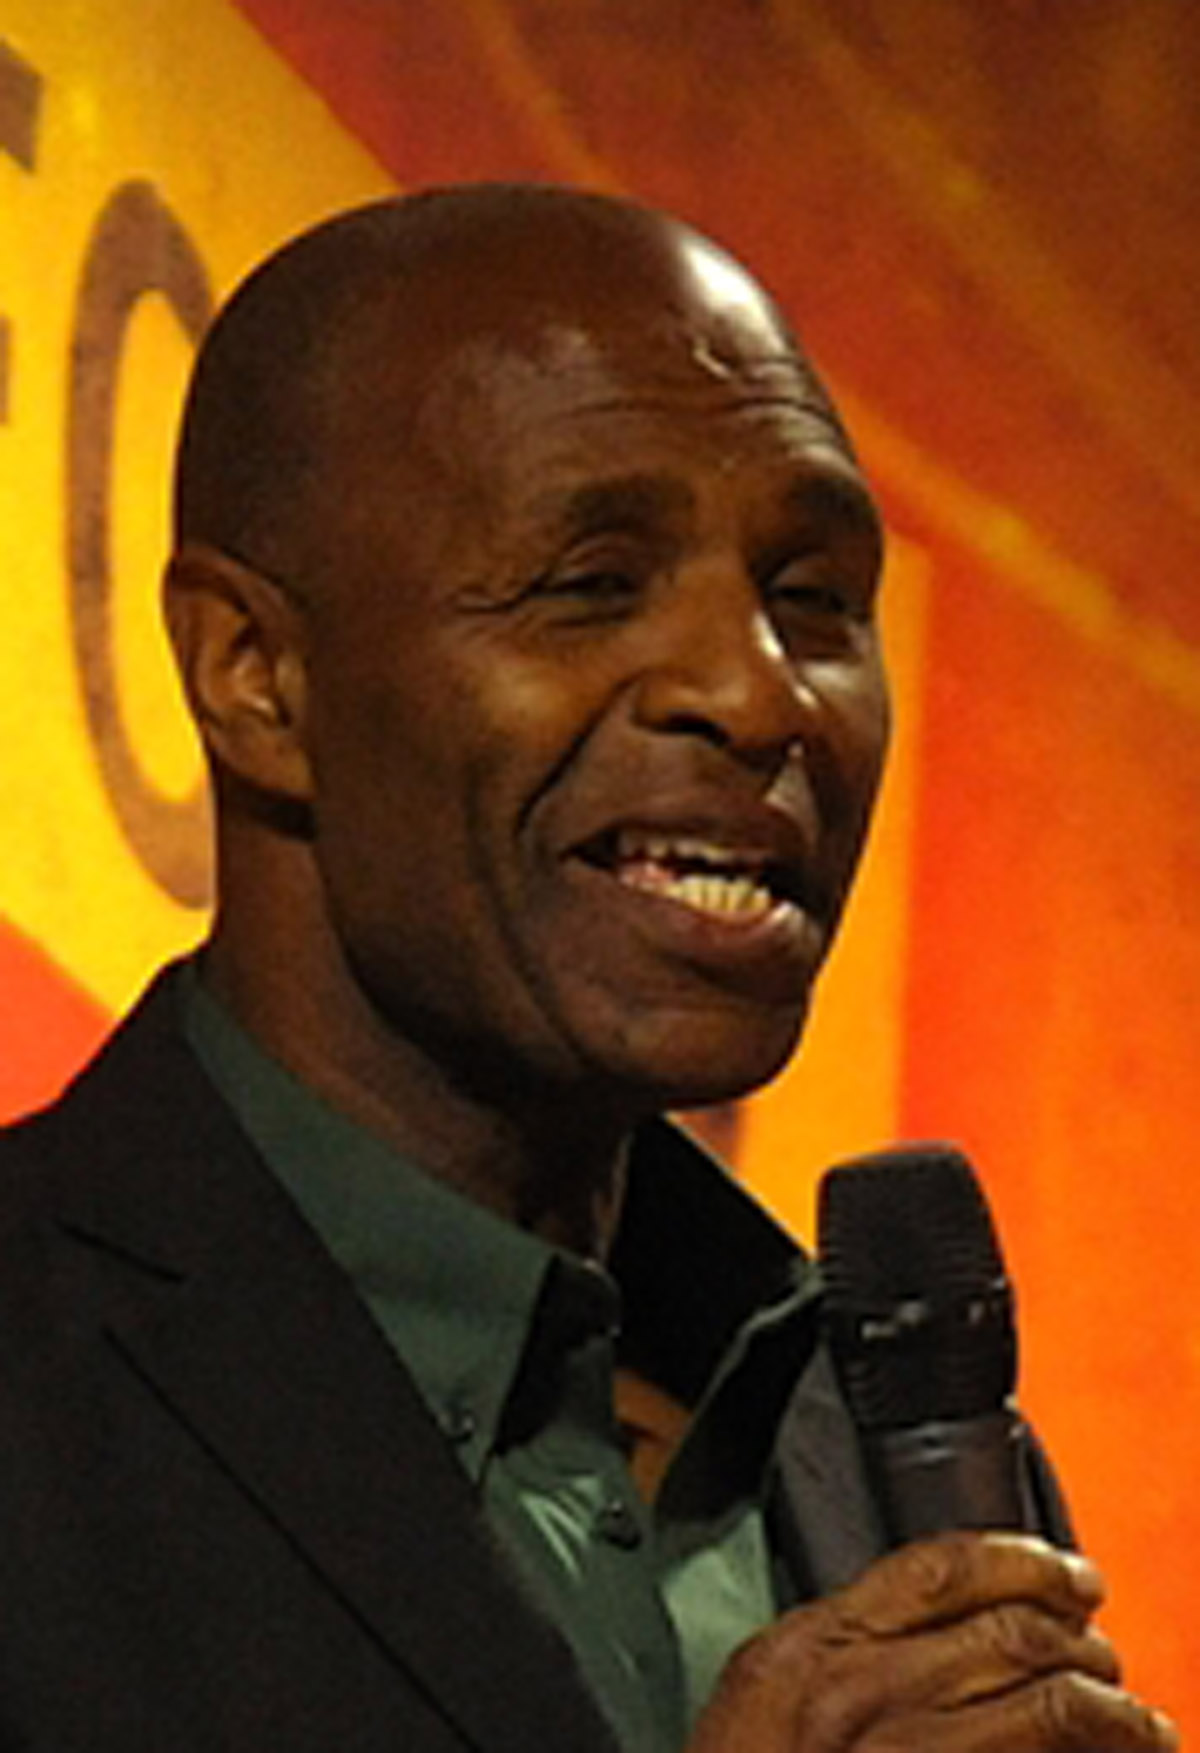 Watford FC legend Luther Blissett was one of the quizmasters for the evening.